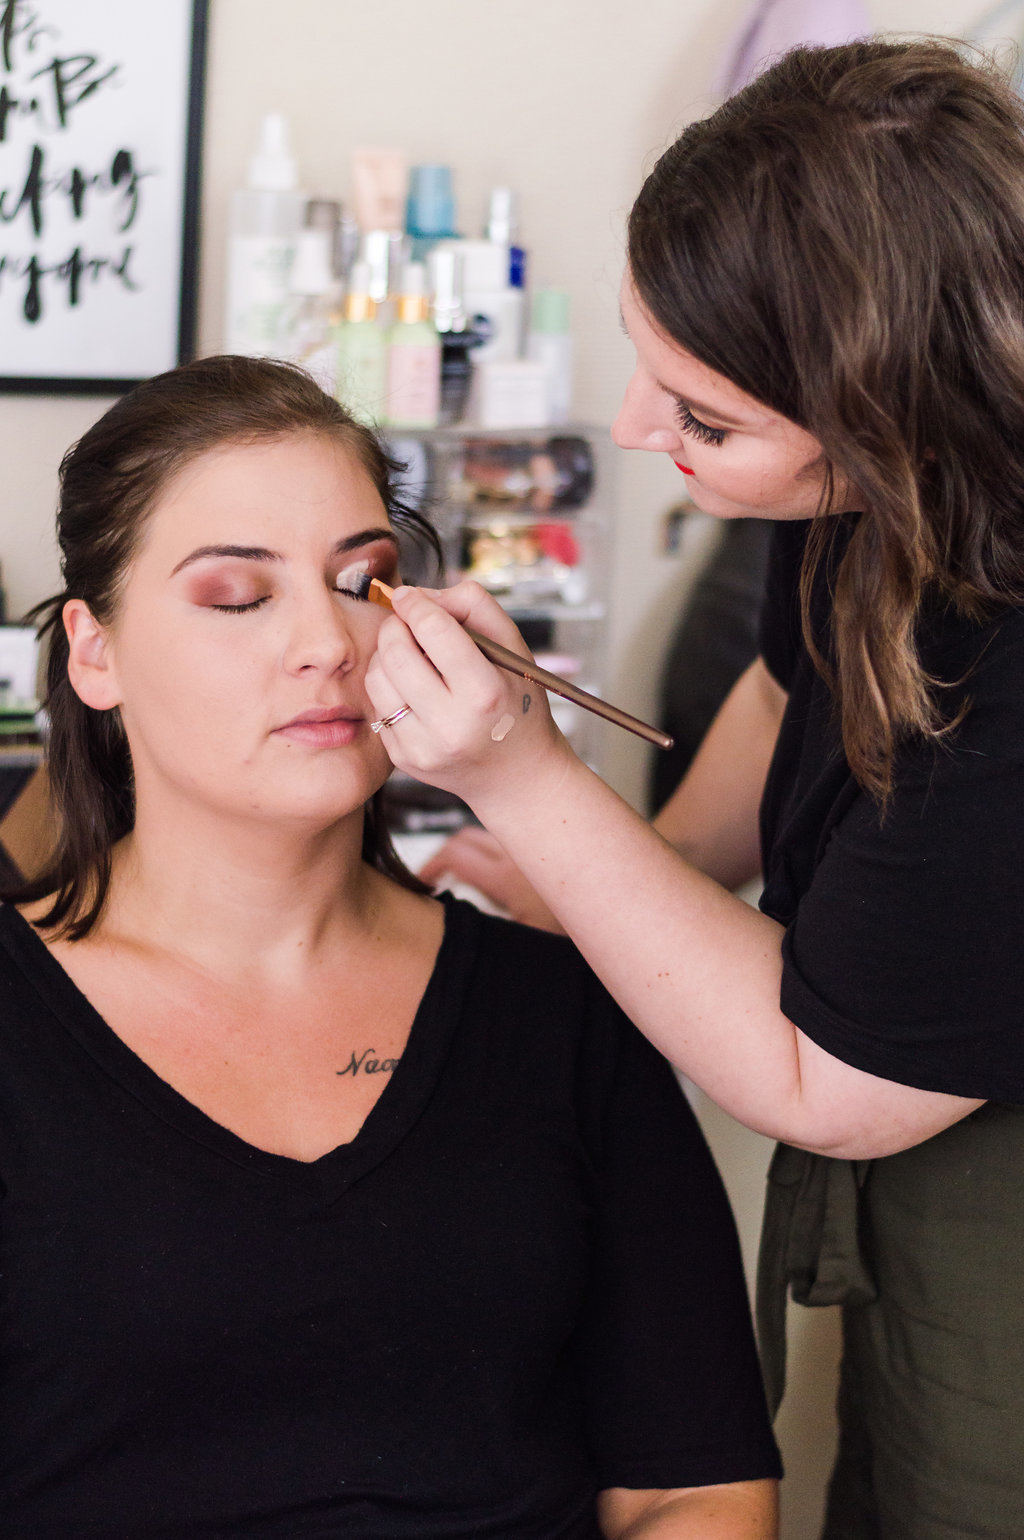 Lifestyle_Creative_Branding_Makeup_Lynchburg_Virginia_Photographer-35